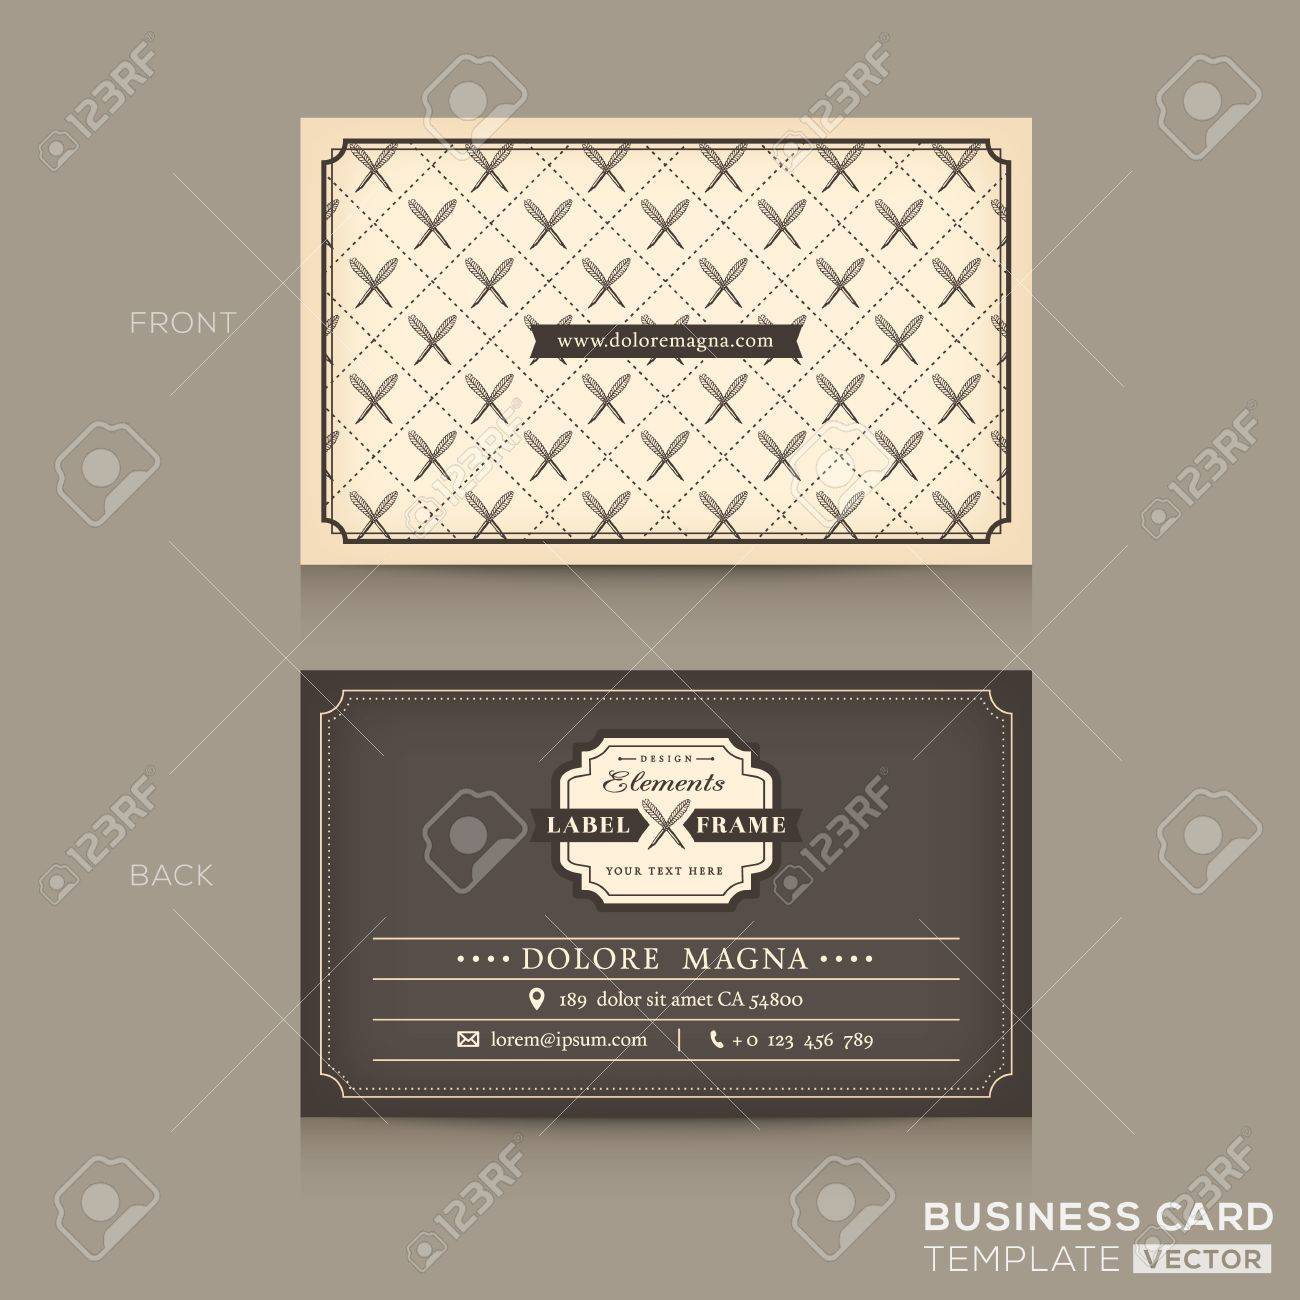 Classic business card design template royalty free cliparts vectors classic business card design template stock vector 34052097 colourmoves